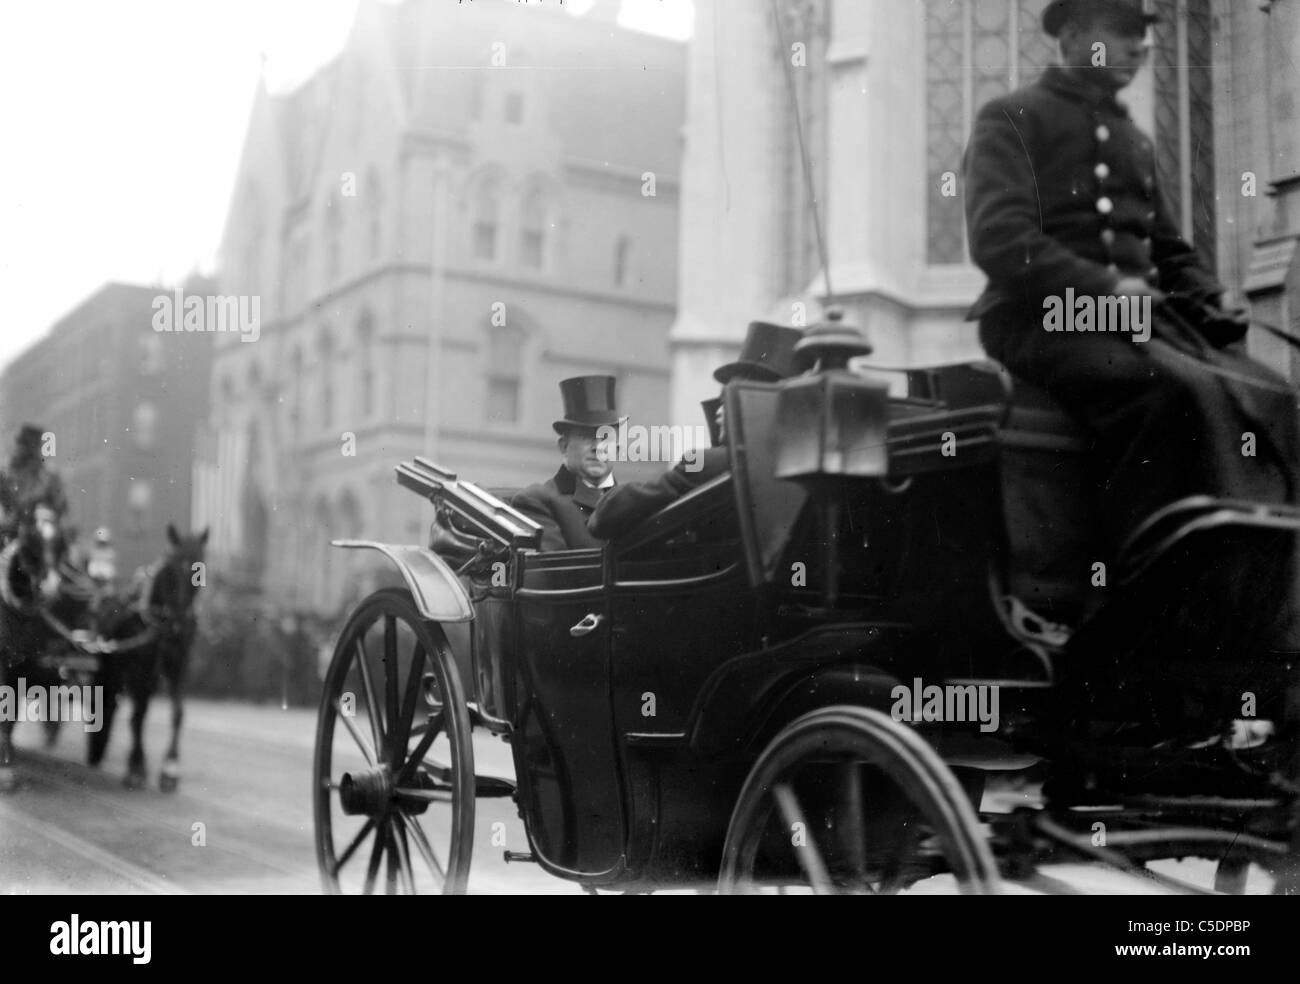 C. F. Murphy seated in carriage, New York City, USA - Stock Image